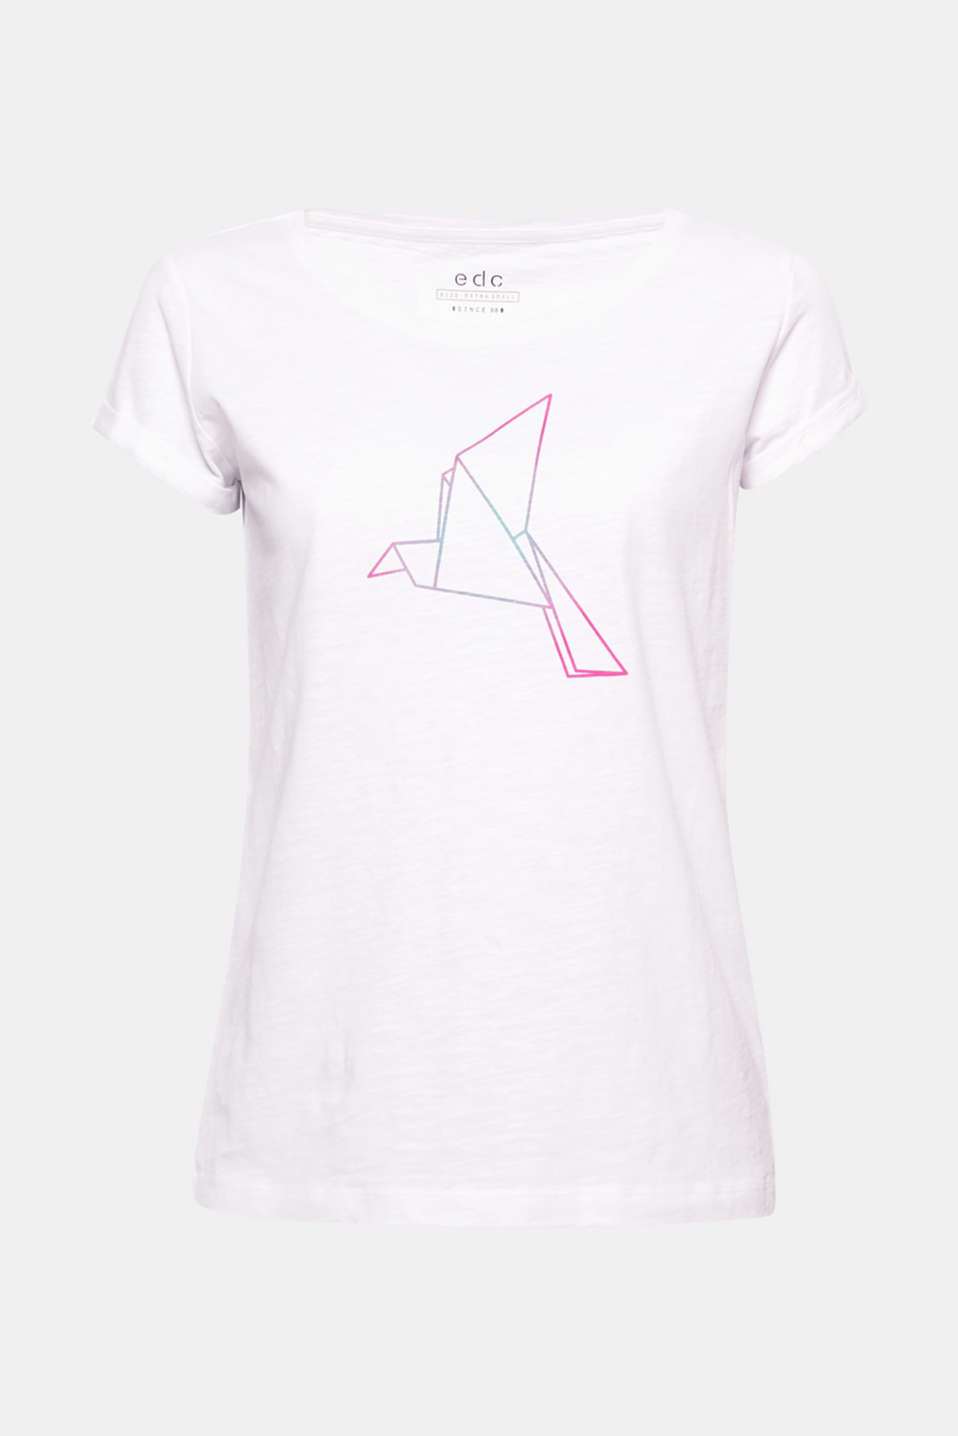 The neon-coloured bird print in a graphic style gives this airy, textured cotton T-shirt a super fashionable twist!